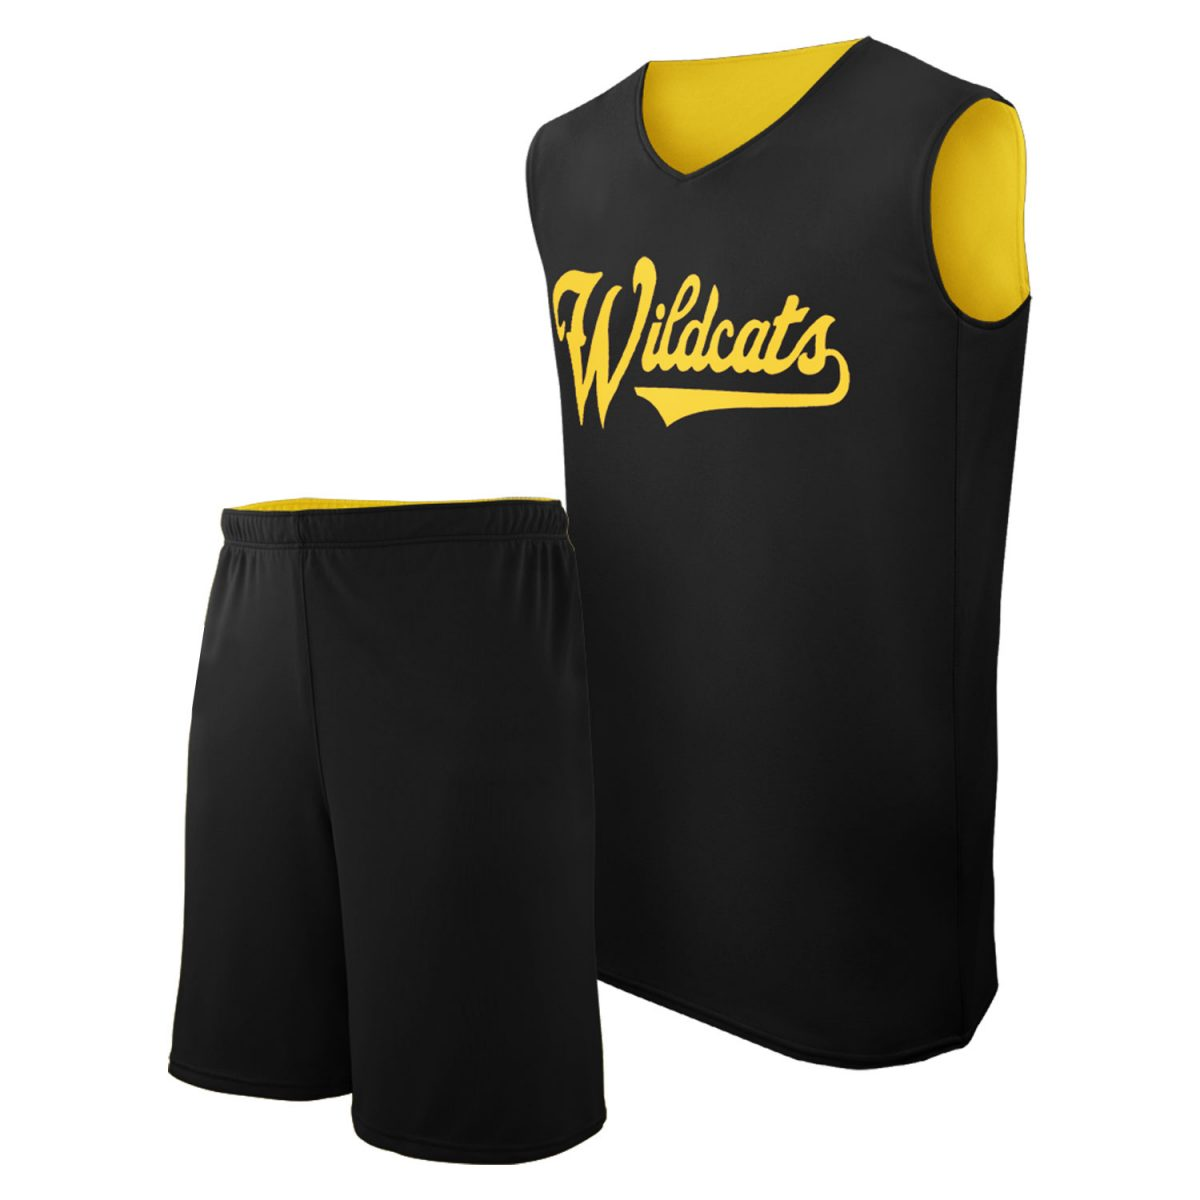 Boys Basketball Uniforms Manufacturers in Thailand